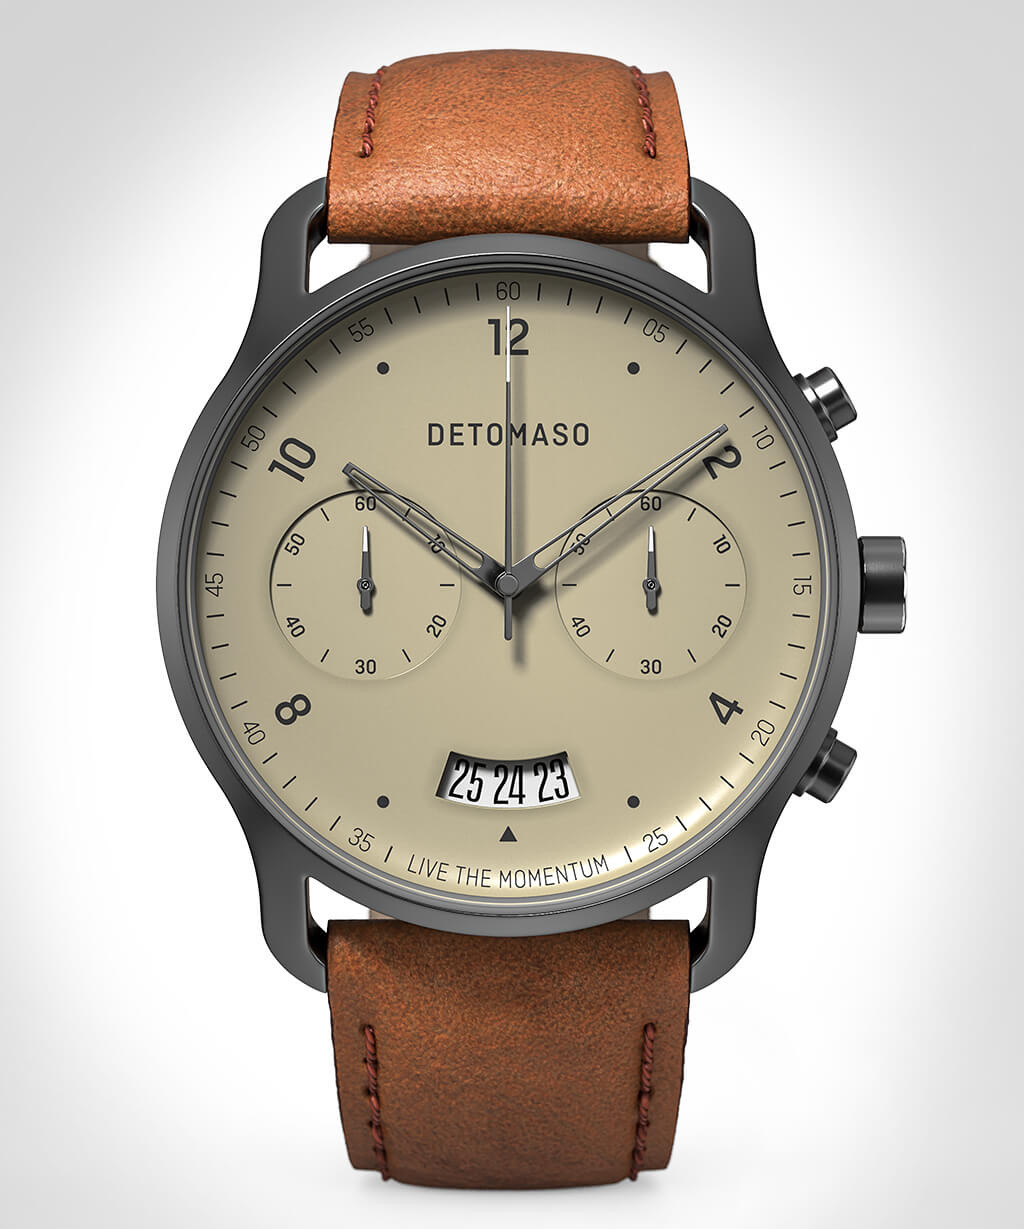 SORPASSO CHRONOGRAPH IVORY - LEATHER STRAP BROWN